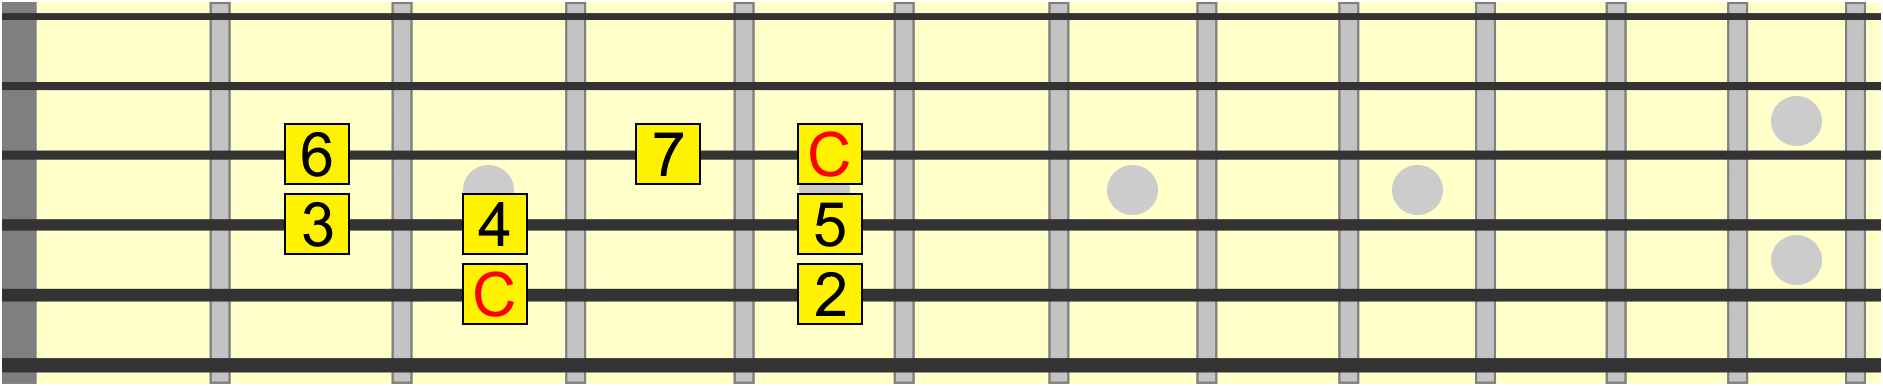 C major scale pattern from 5th to 3rd string